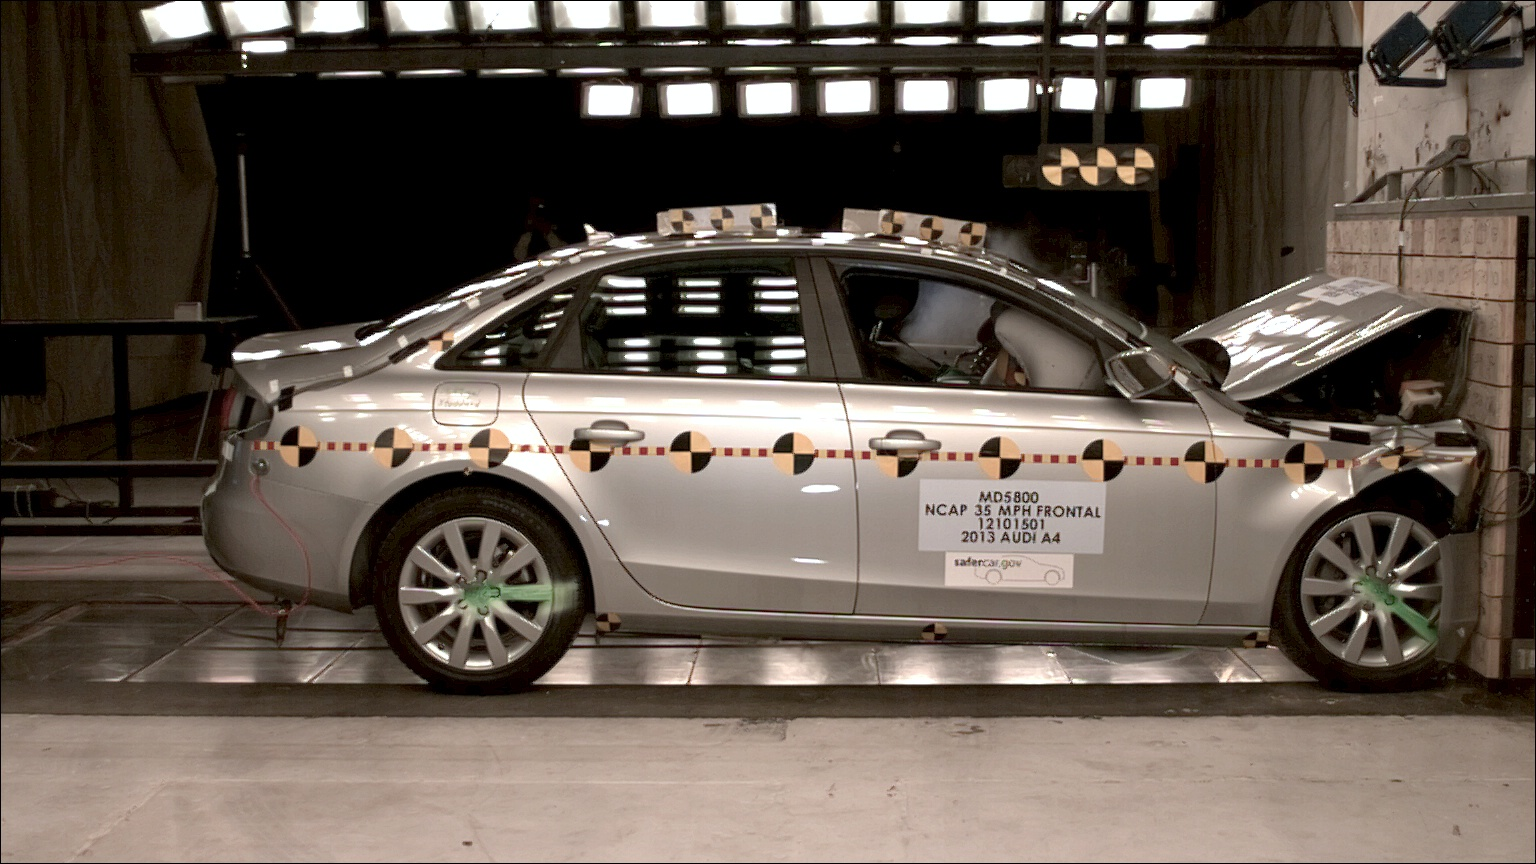 NCAP 2016 Audi A4 front crash test photo